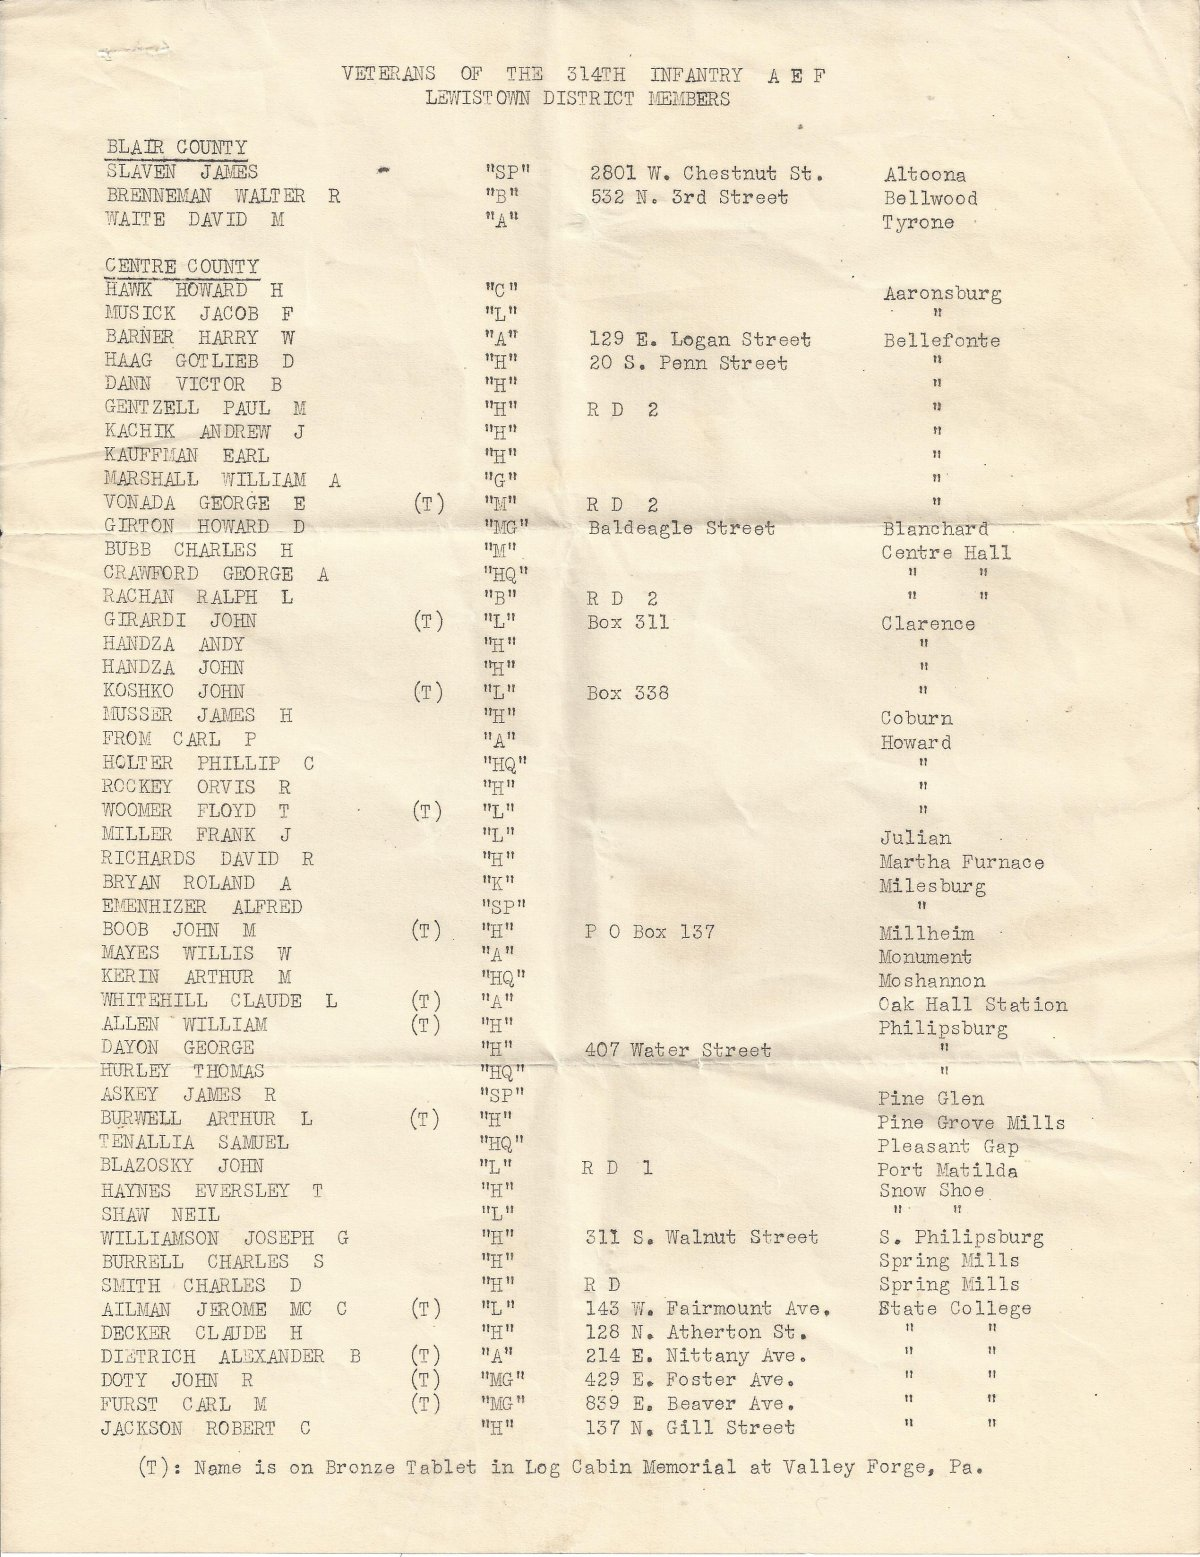 314th Infantry Lewistown District Members page 1